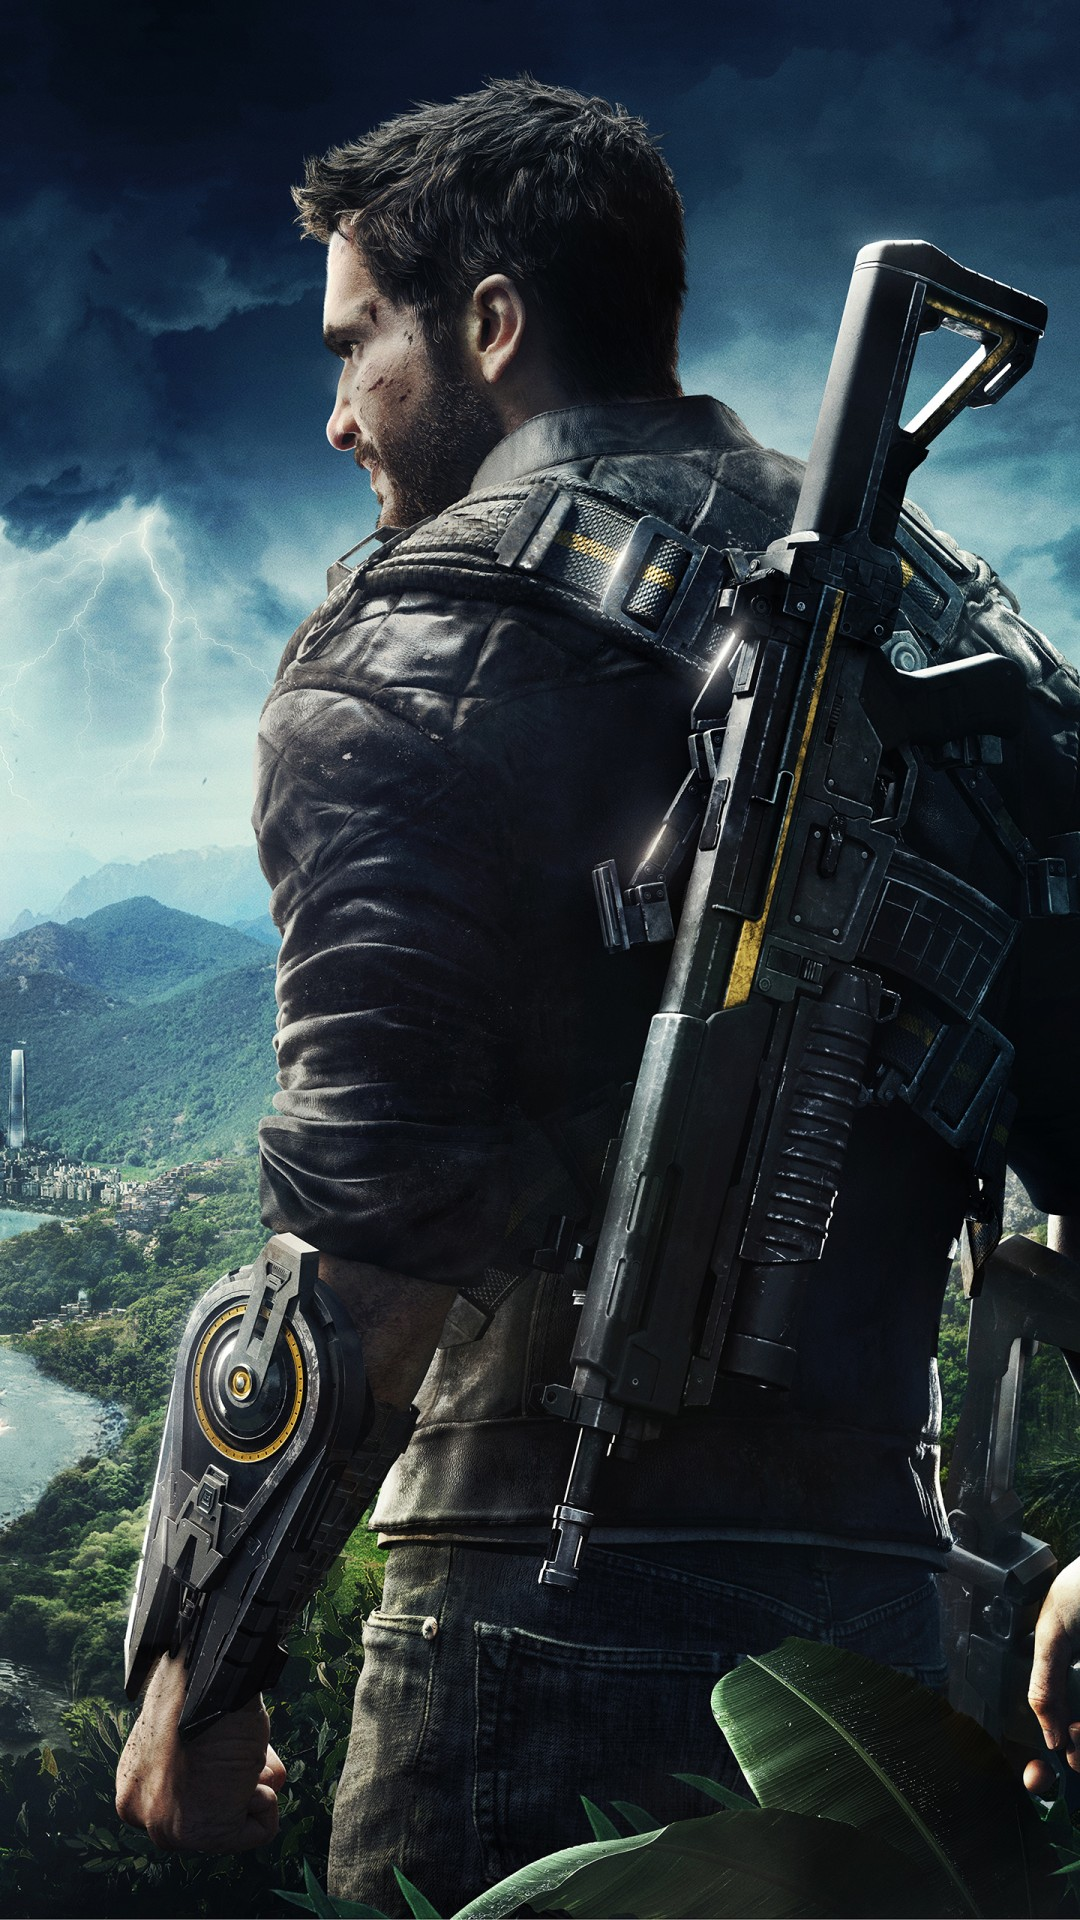 Download Wallpaper Iphone 5s Just Cause 4 E3 2018 4k 8k Wallpapers Hd Wallpapers Id